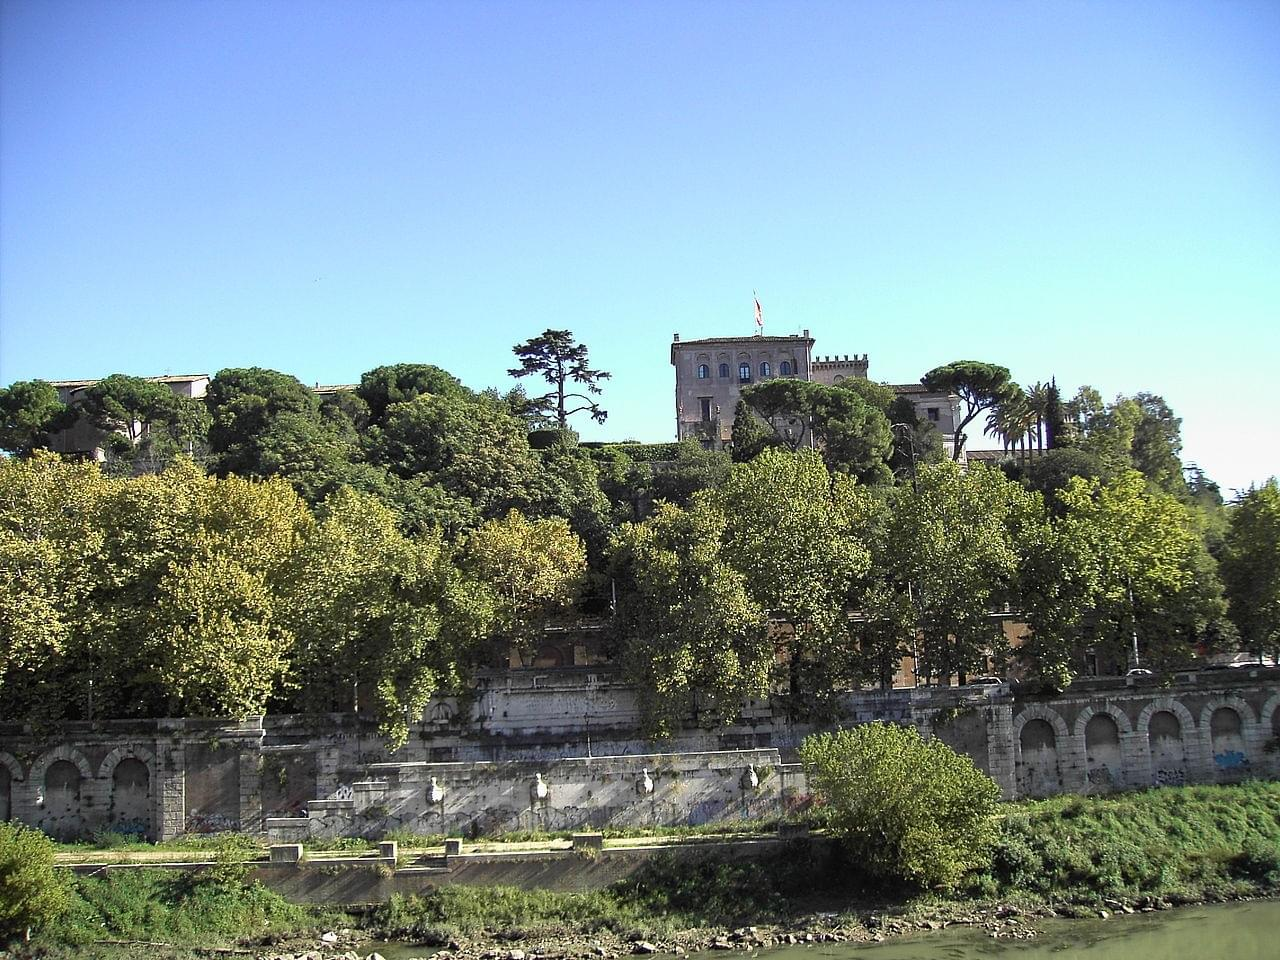 Introduction to Walk around the Aventine Hill and the Basilica of Santa Sabina